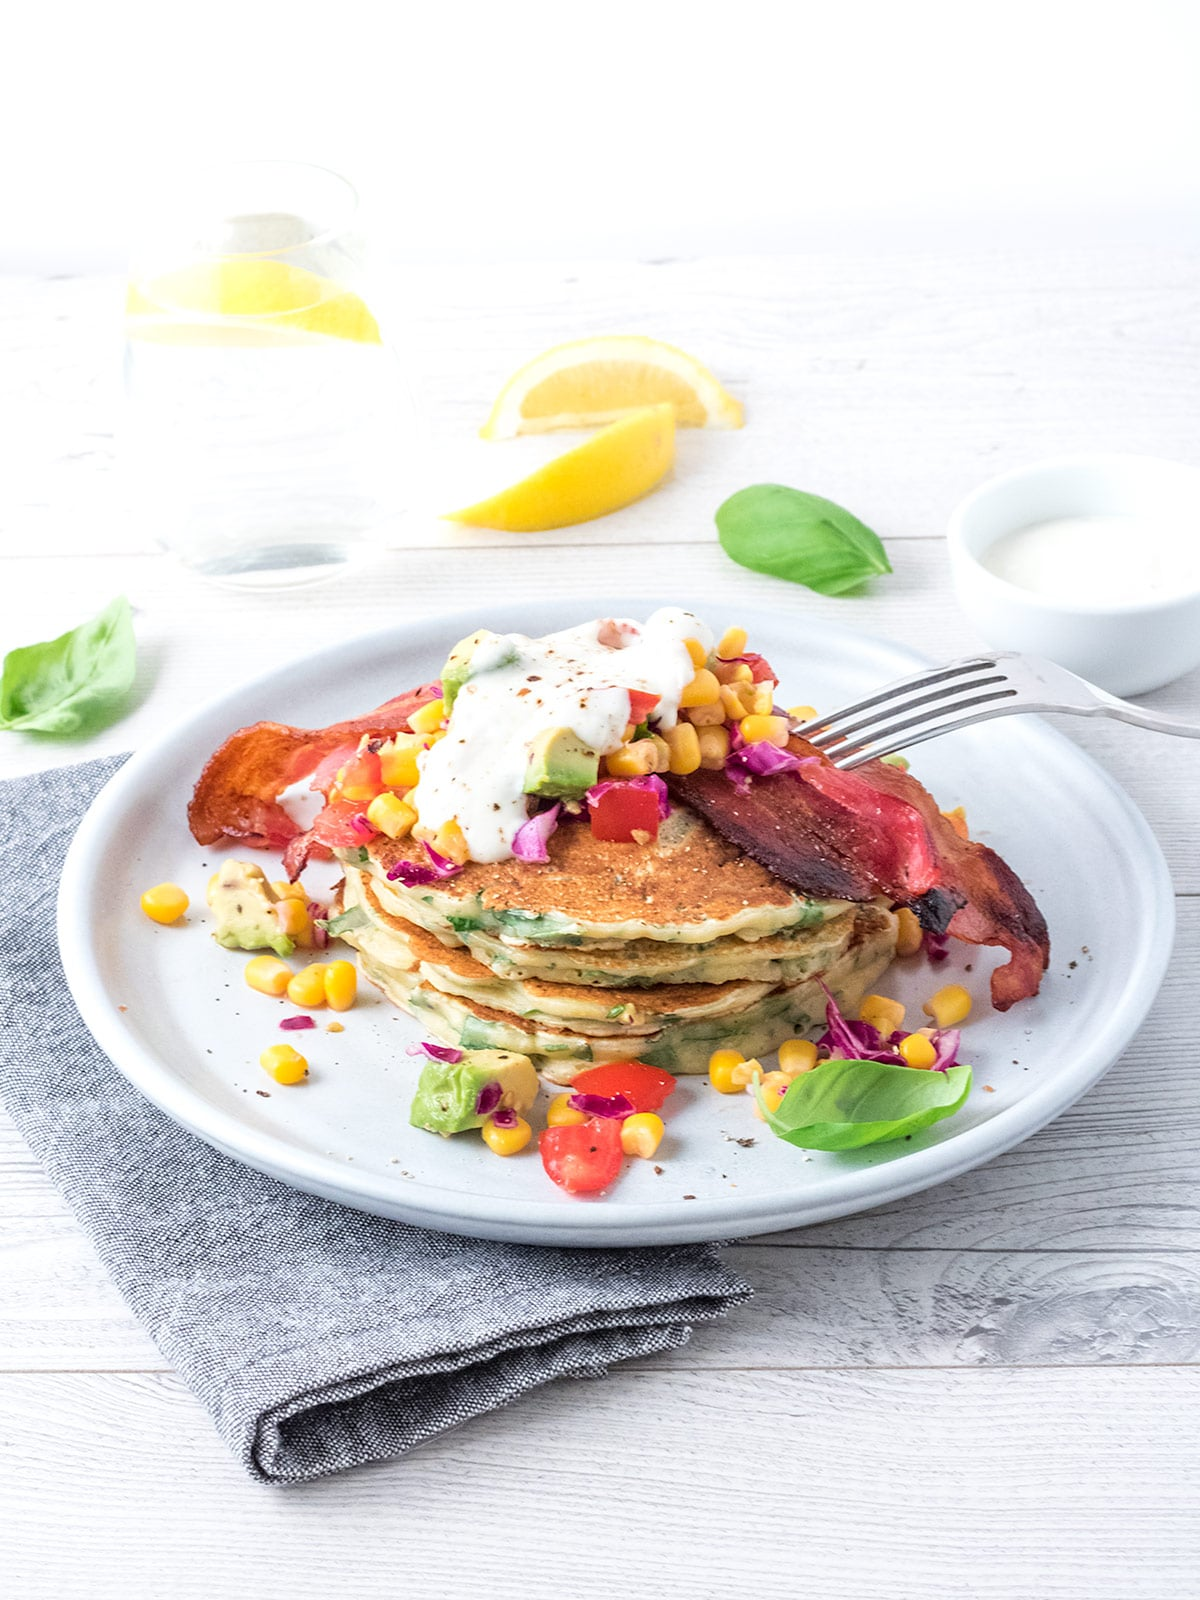 The best parts of breakfast (crispy bacon, pancakes…) made into a delicious savoury dinner. 